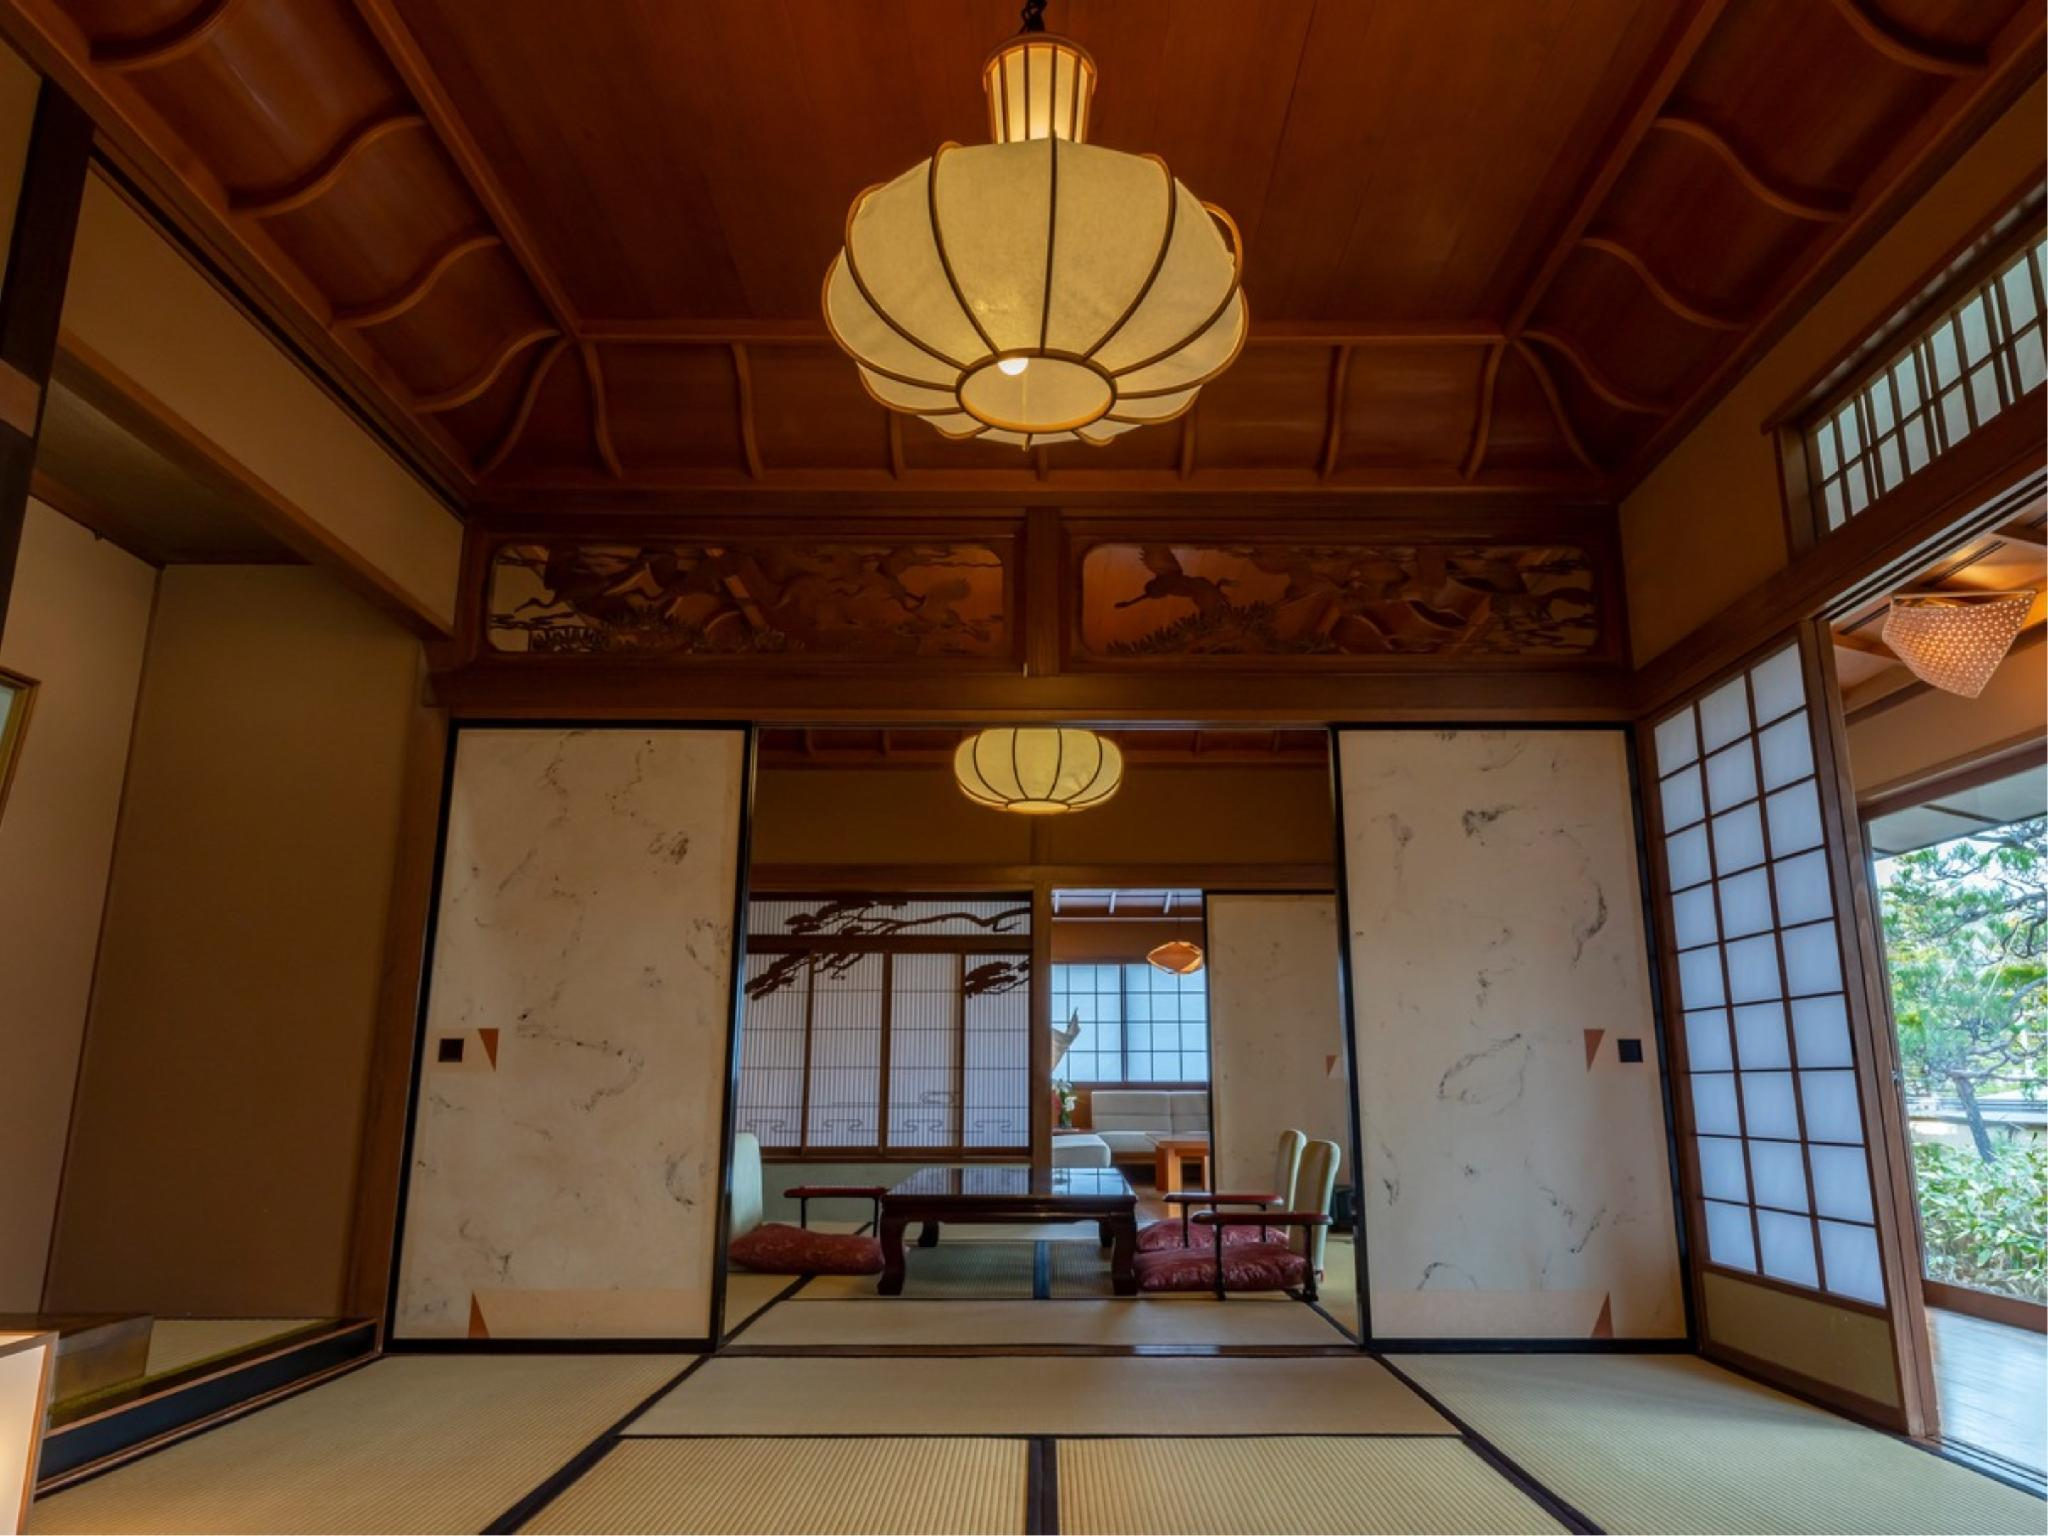 다다미 객실 또는 다다미 침대 객실(SENKEIEN HAGI, HINOKI/히노키 온천탕) (Seikeien Japanese-style Room or Japanese/Western-style Room with Cypress Hot Spring Bath (Hagi/Hinoki Type))